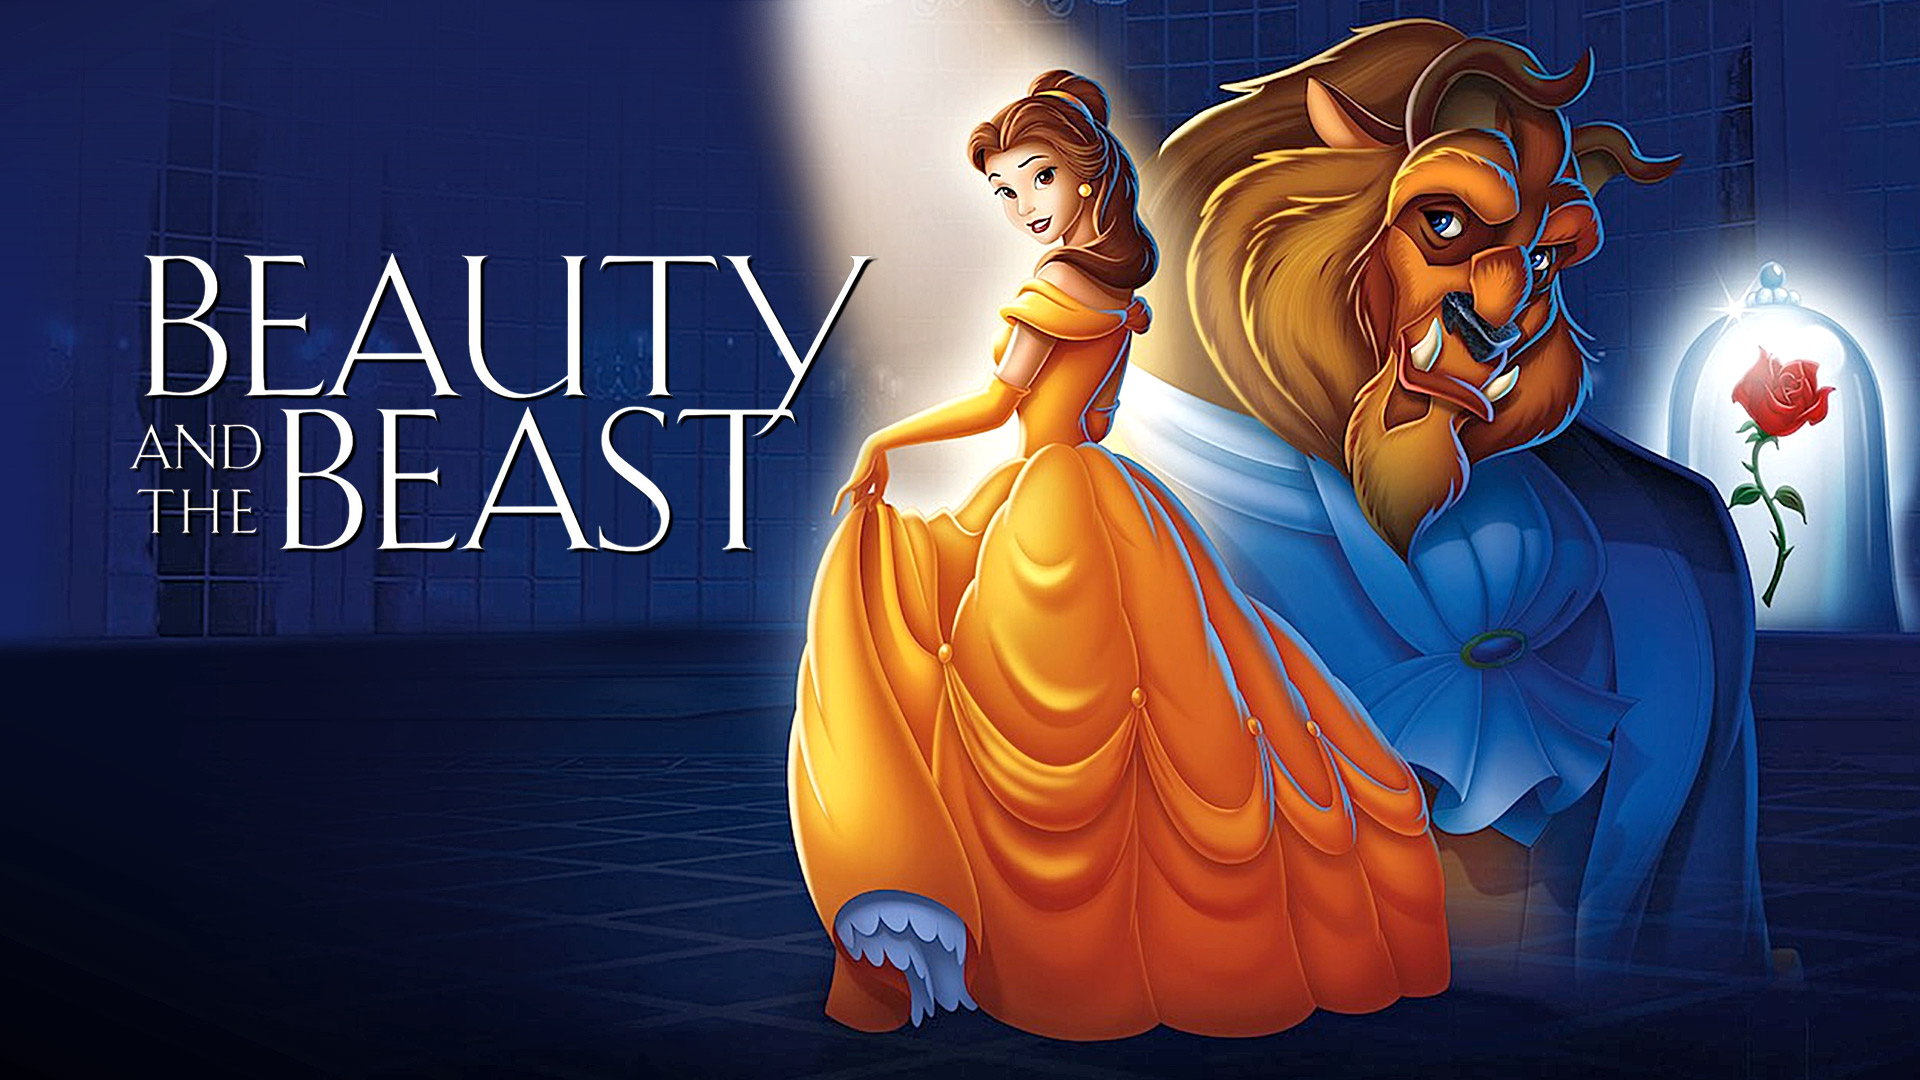 Plaza Classic Film Fest - Beauty and The Beast (Animated) at The Plaza Theatre Performing Arts Center